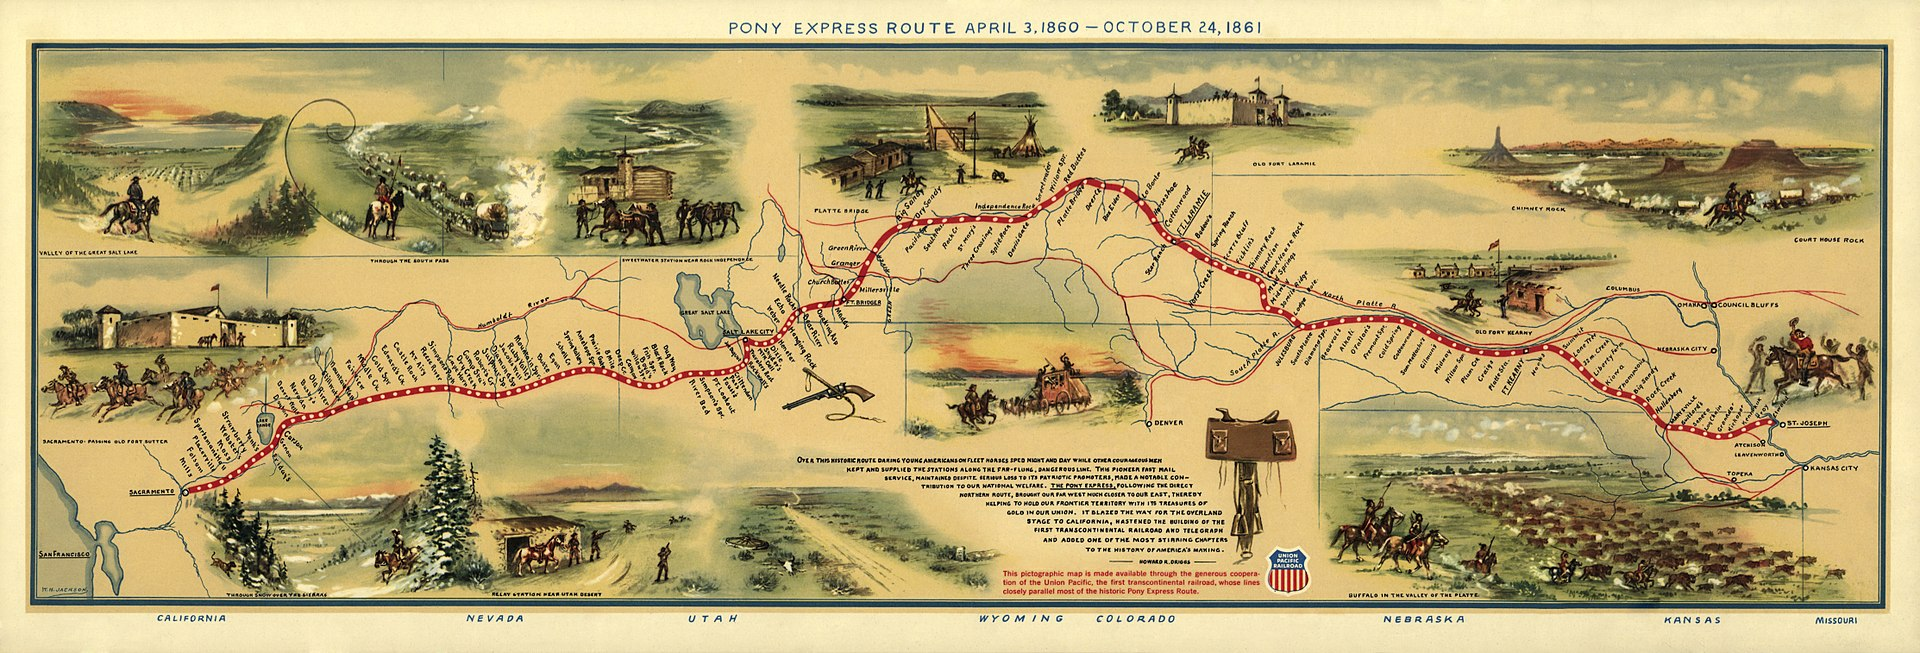 Pony Express Map by William Henry Jackson